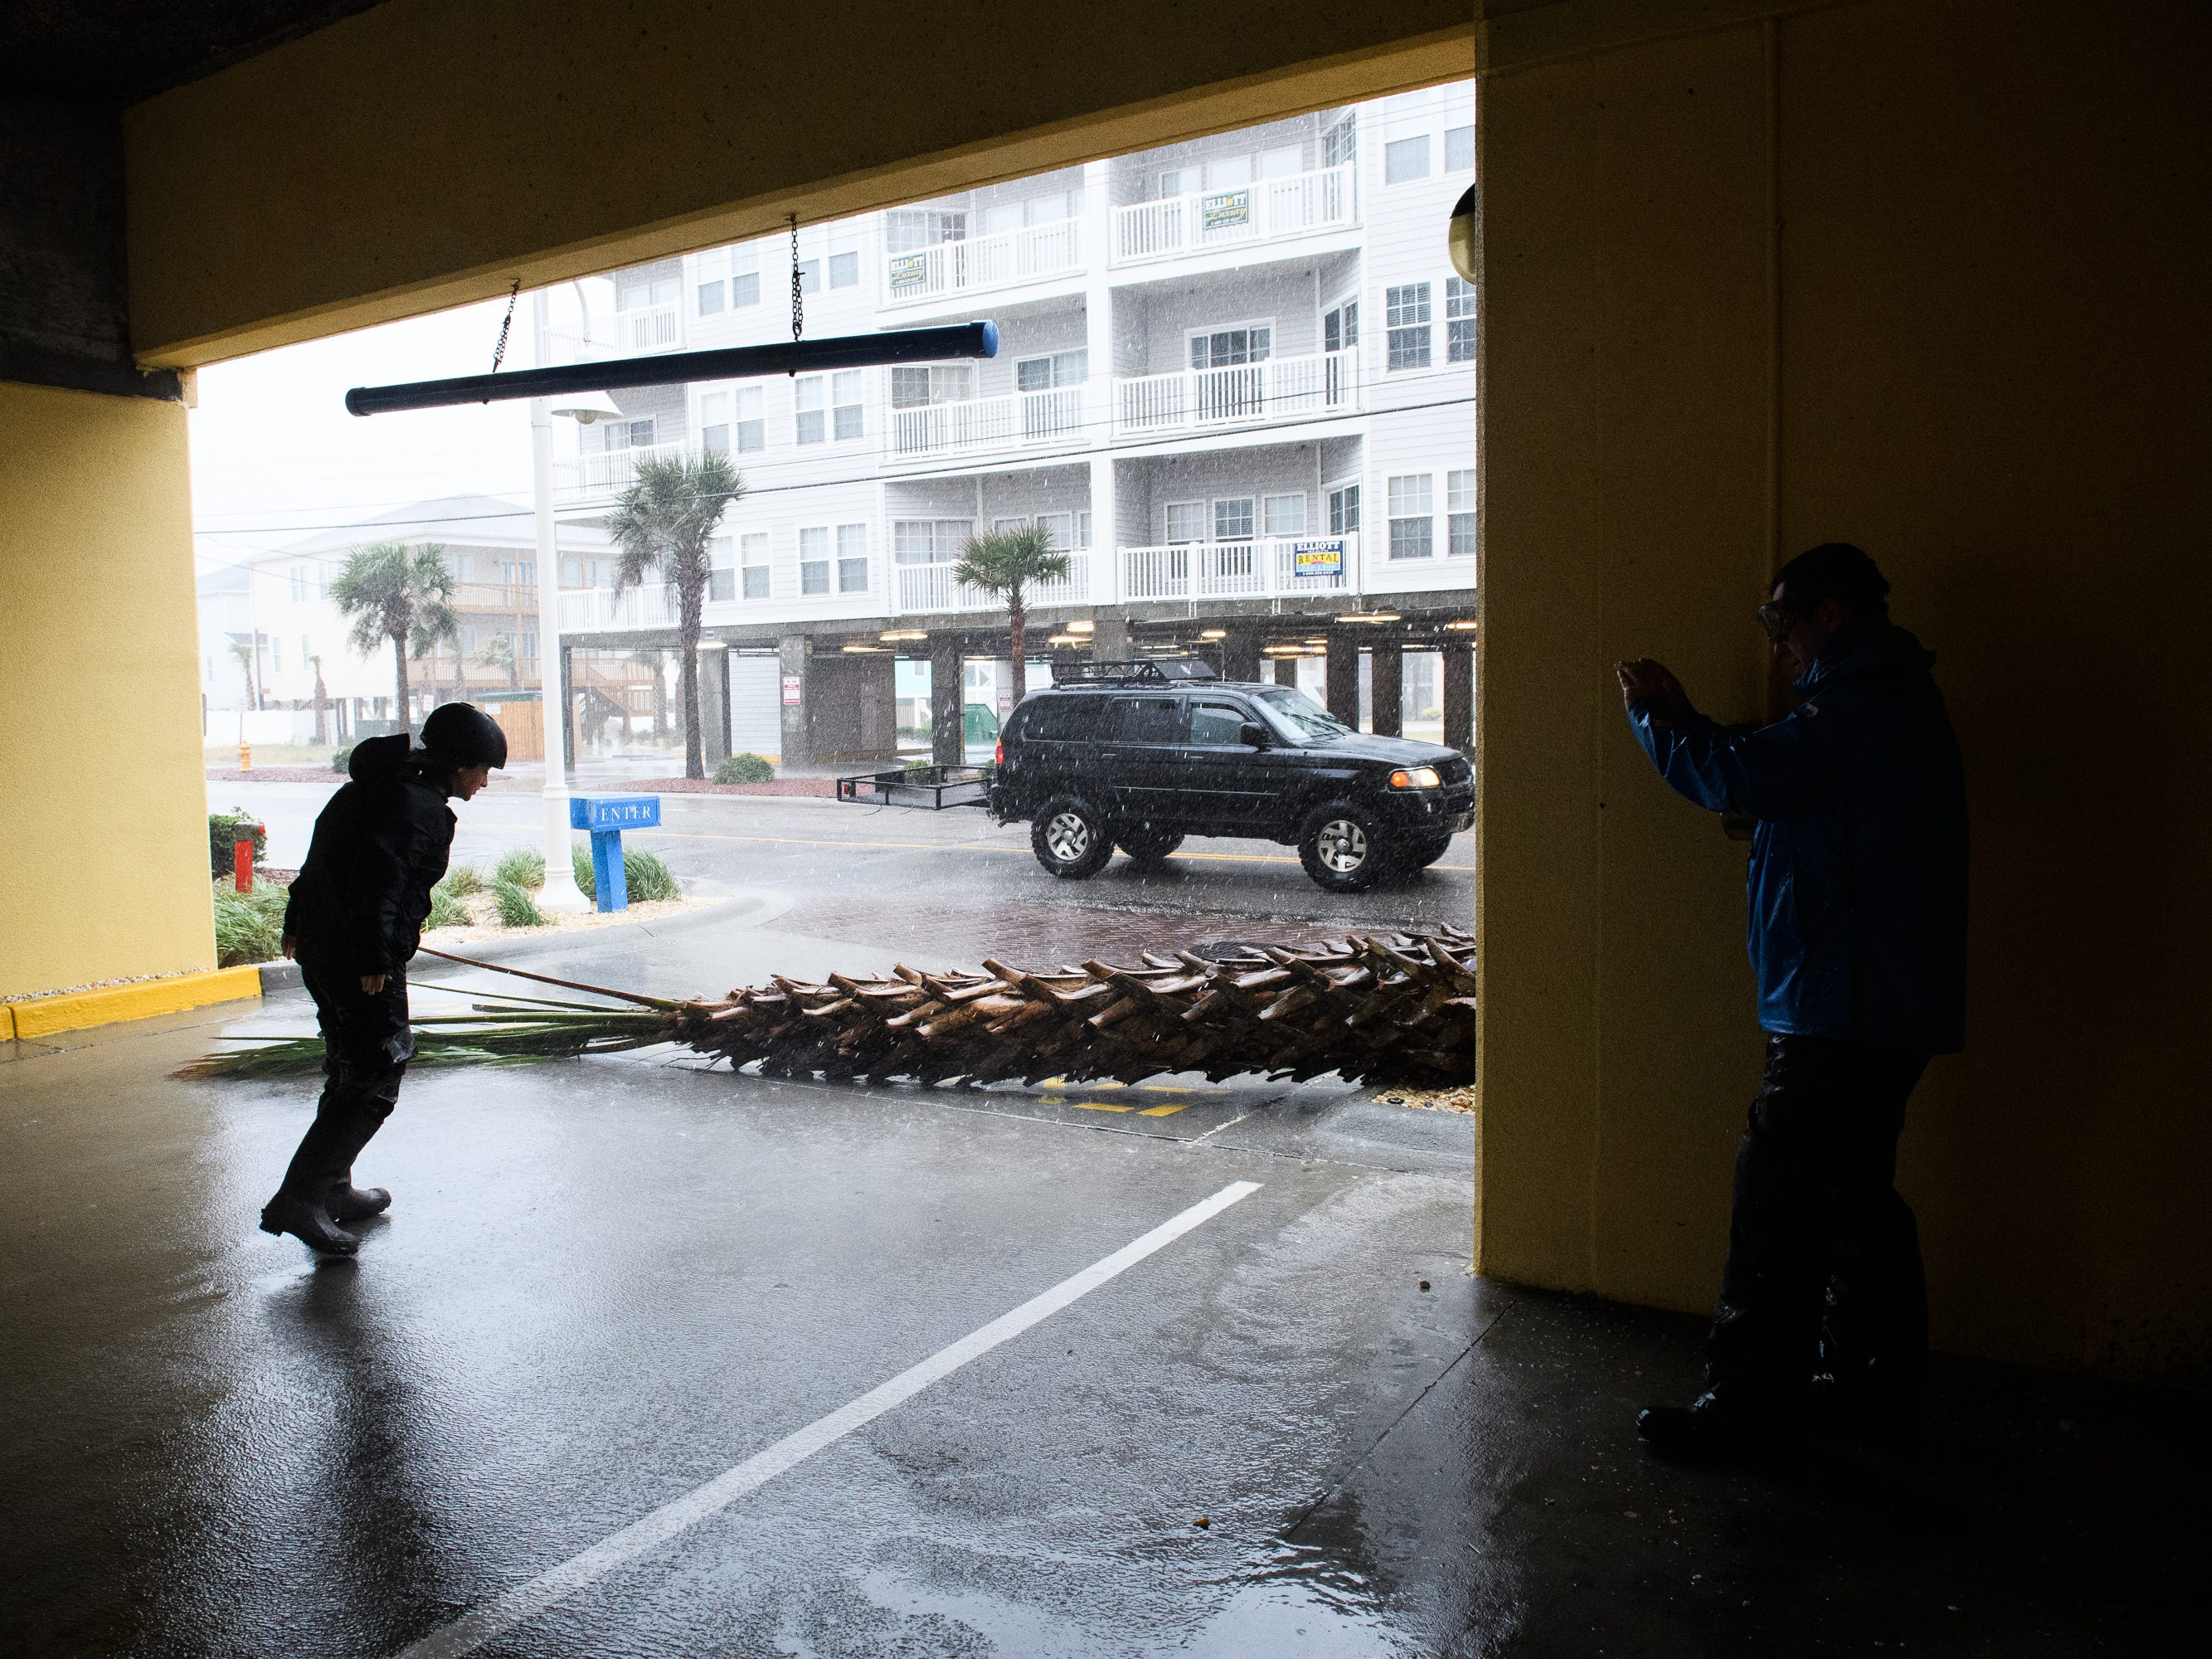 Emily Pike, a storm chaser, sees how long the wind can keep her afloat as storm conditions from Hurricane Florence worsen in North Myrtle Beach on Friday, Sept. 14, 2018.